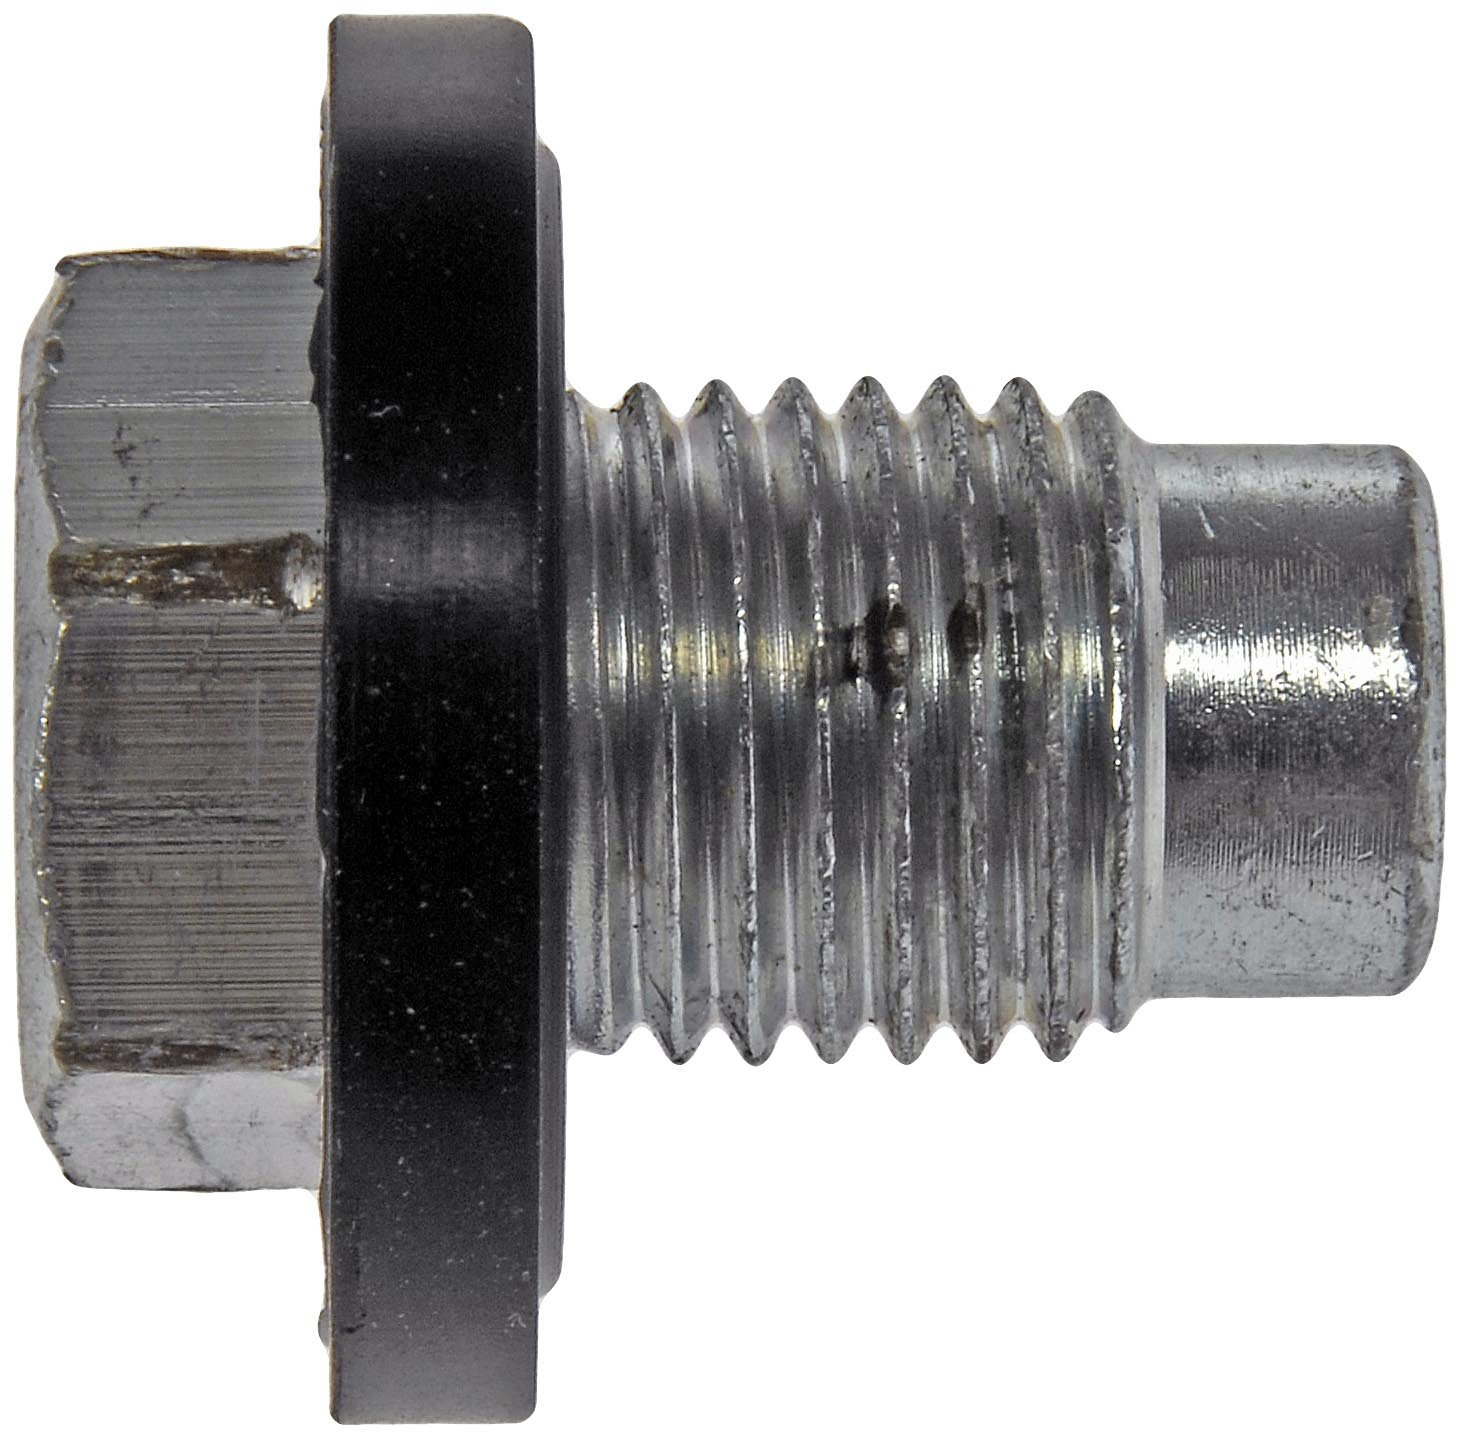 Dorman 090-098.1 AutoGrade Oil Drain Plug